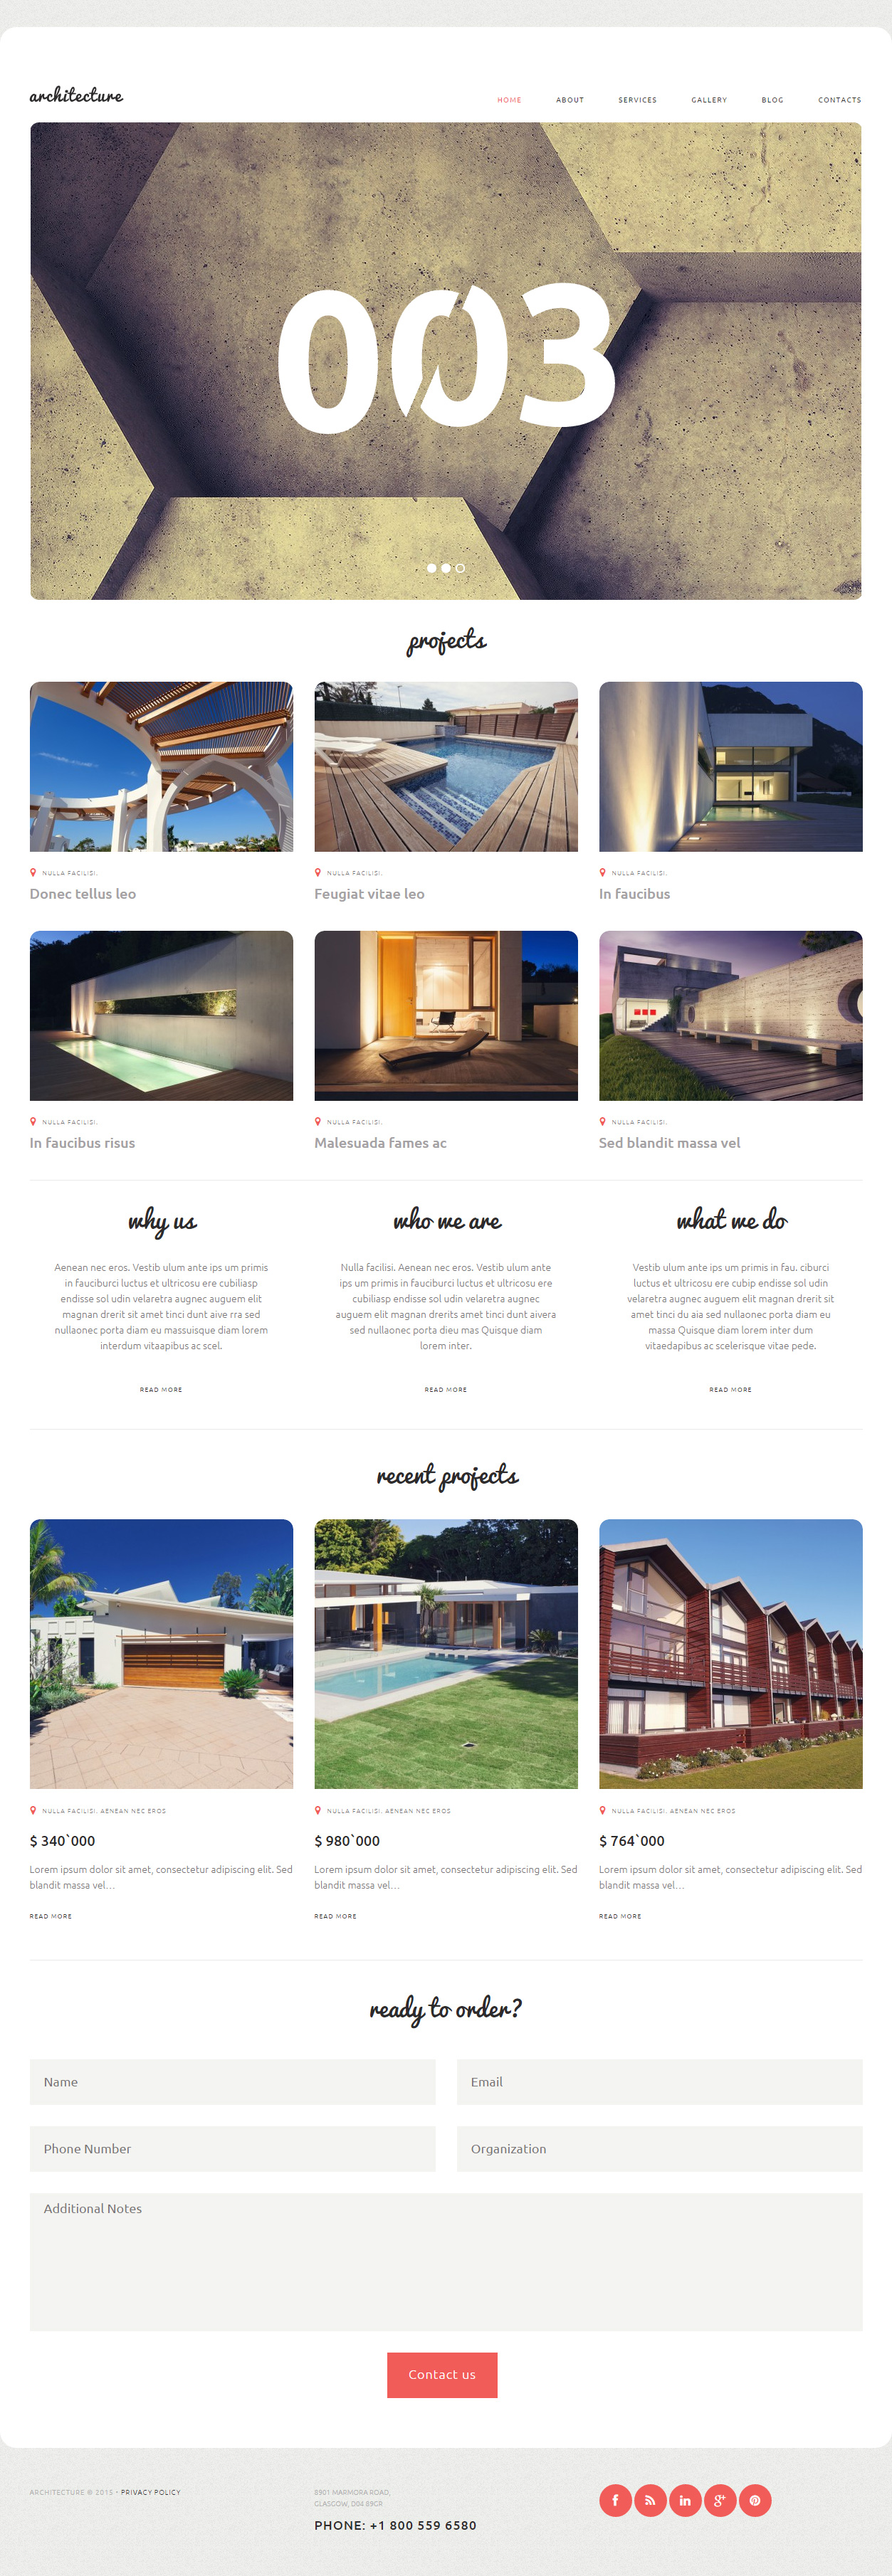 Architecture premium responsive architecture bureau for Architecture wordpress